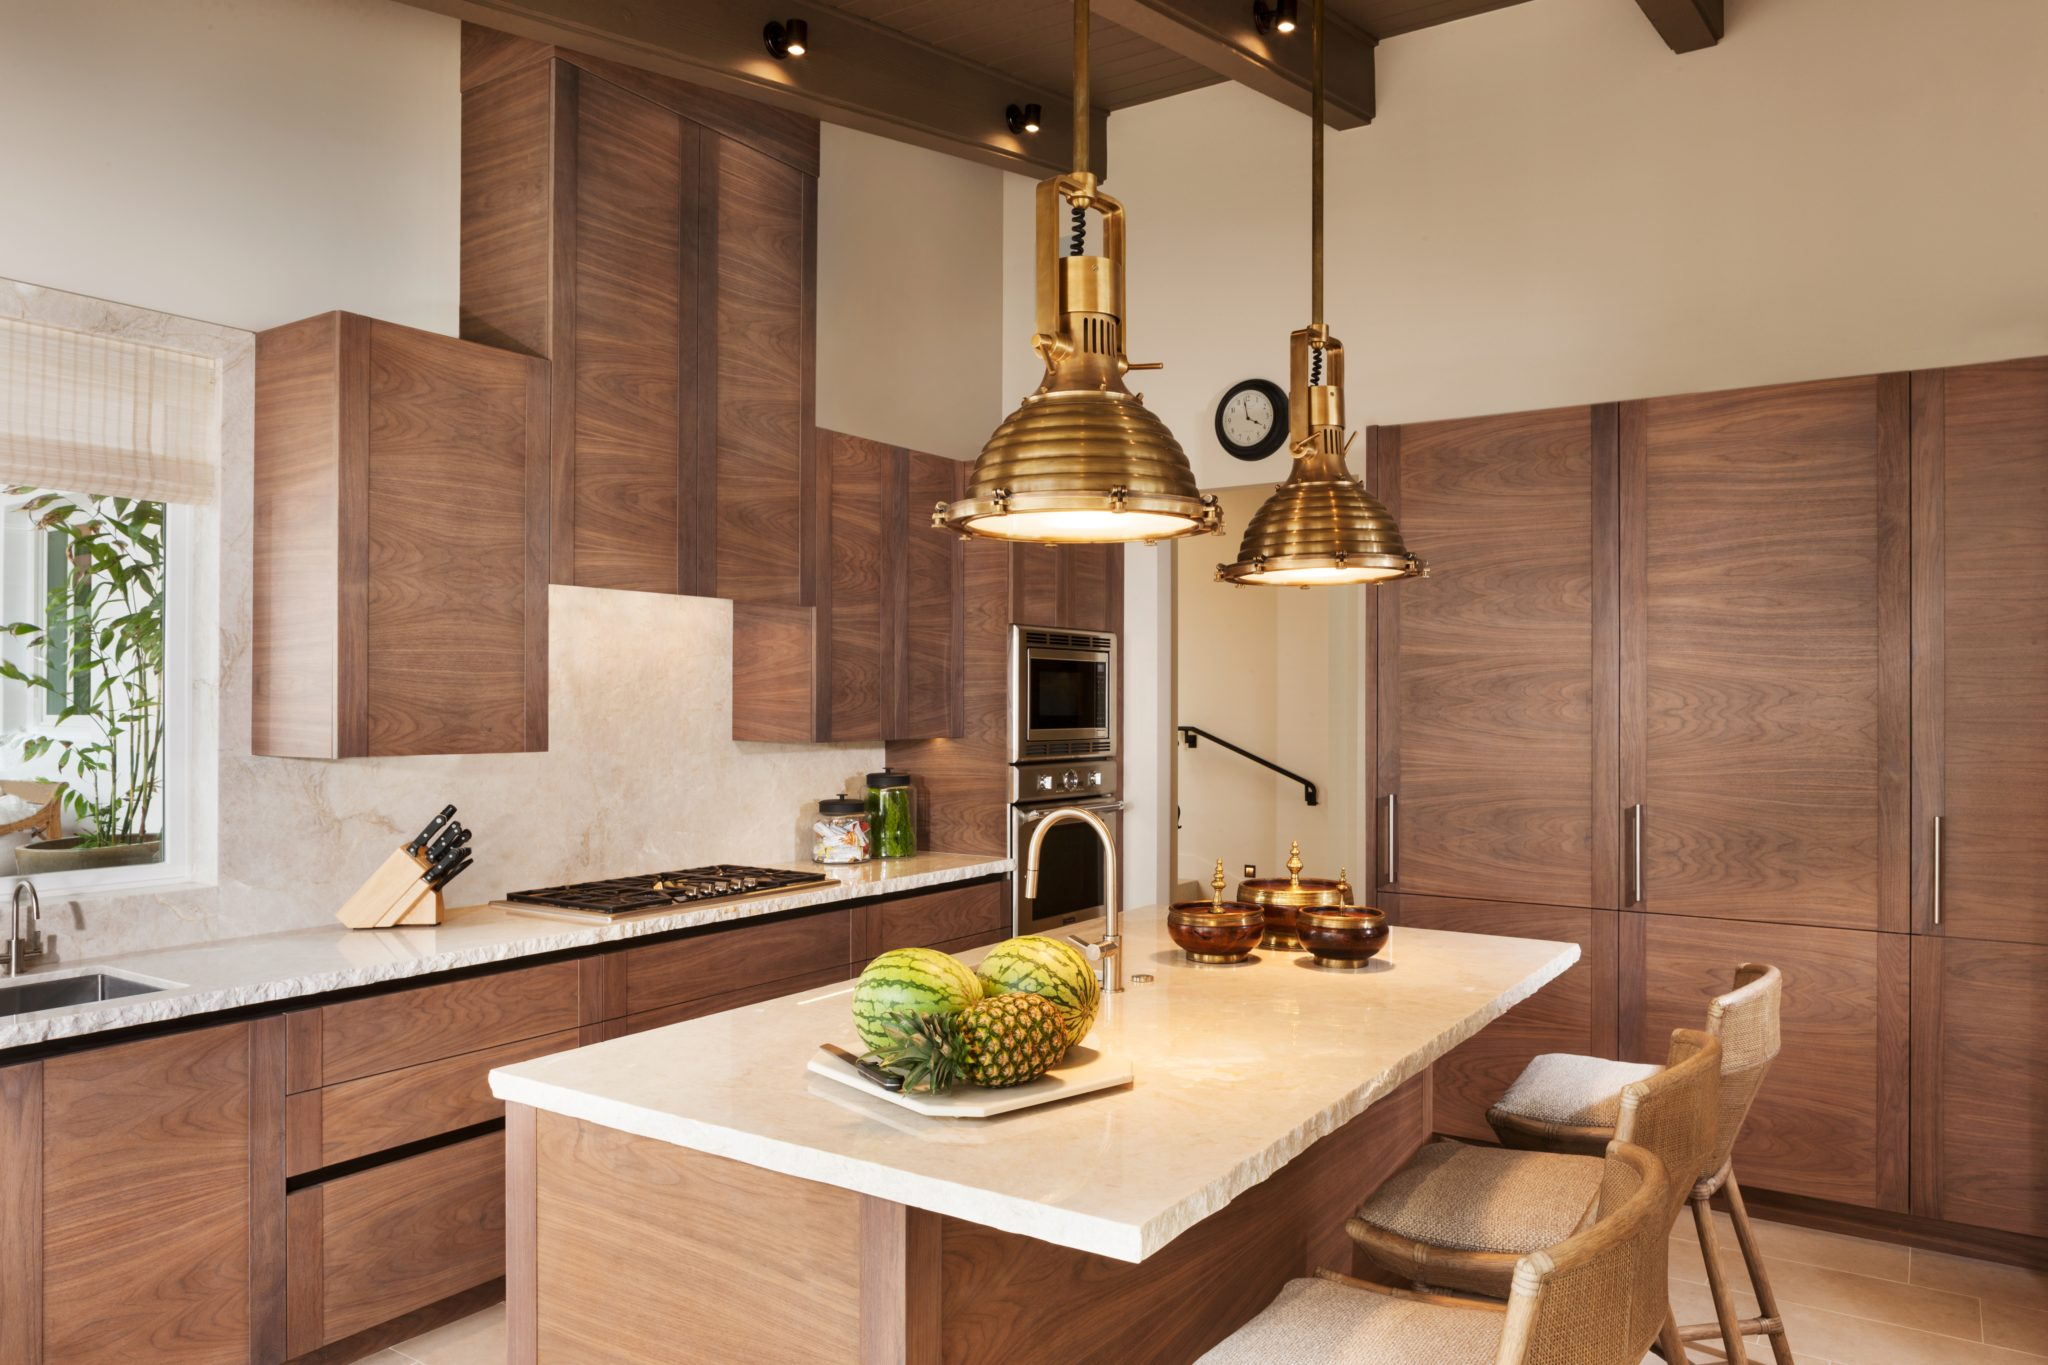 31 Spaces With Industrial Style Pendant Lights Chairish Blog